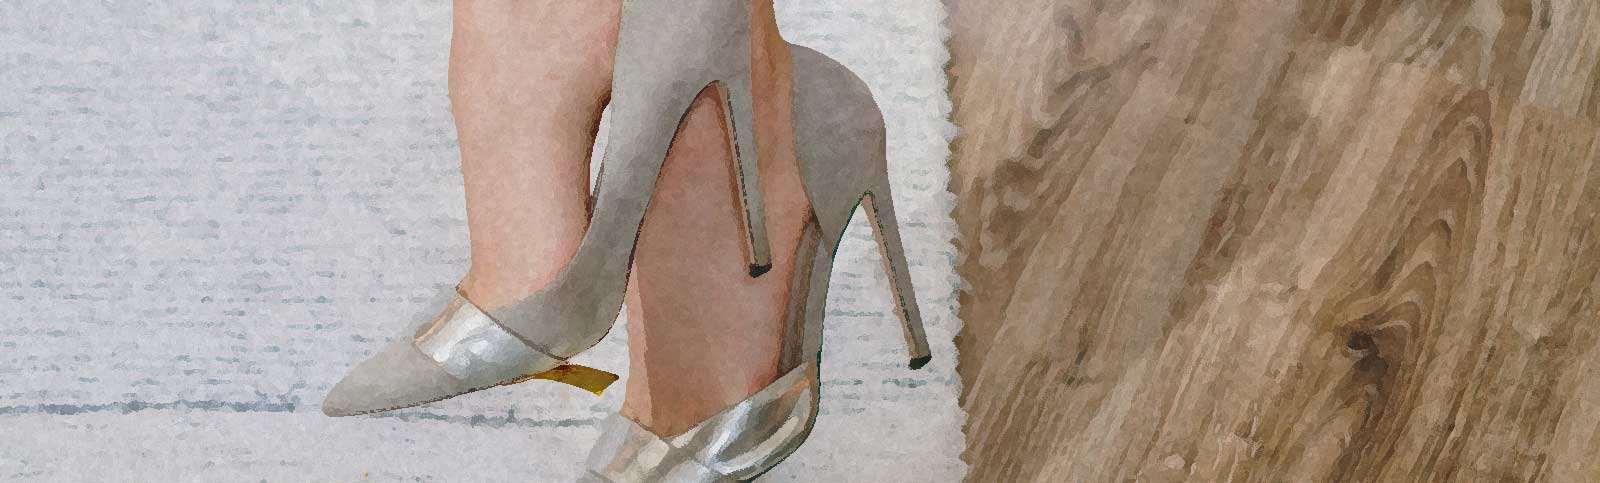 Comfortable High Heels? Here is What to Look For